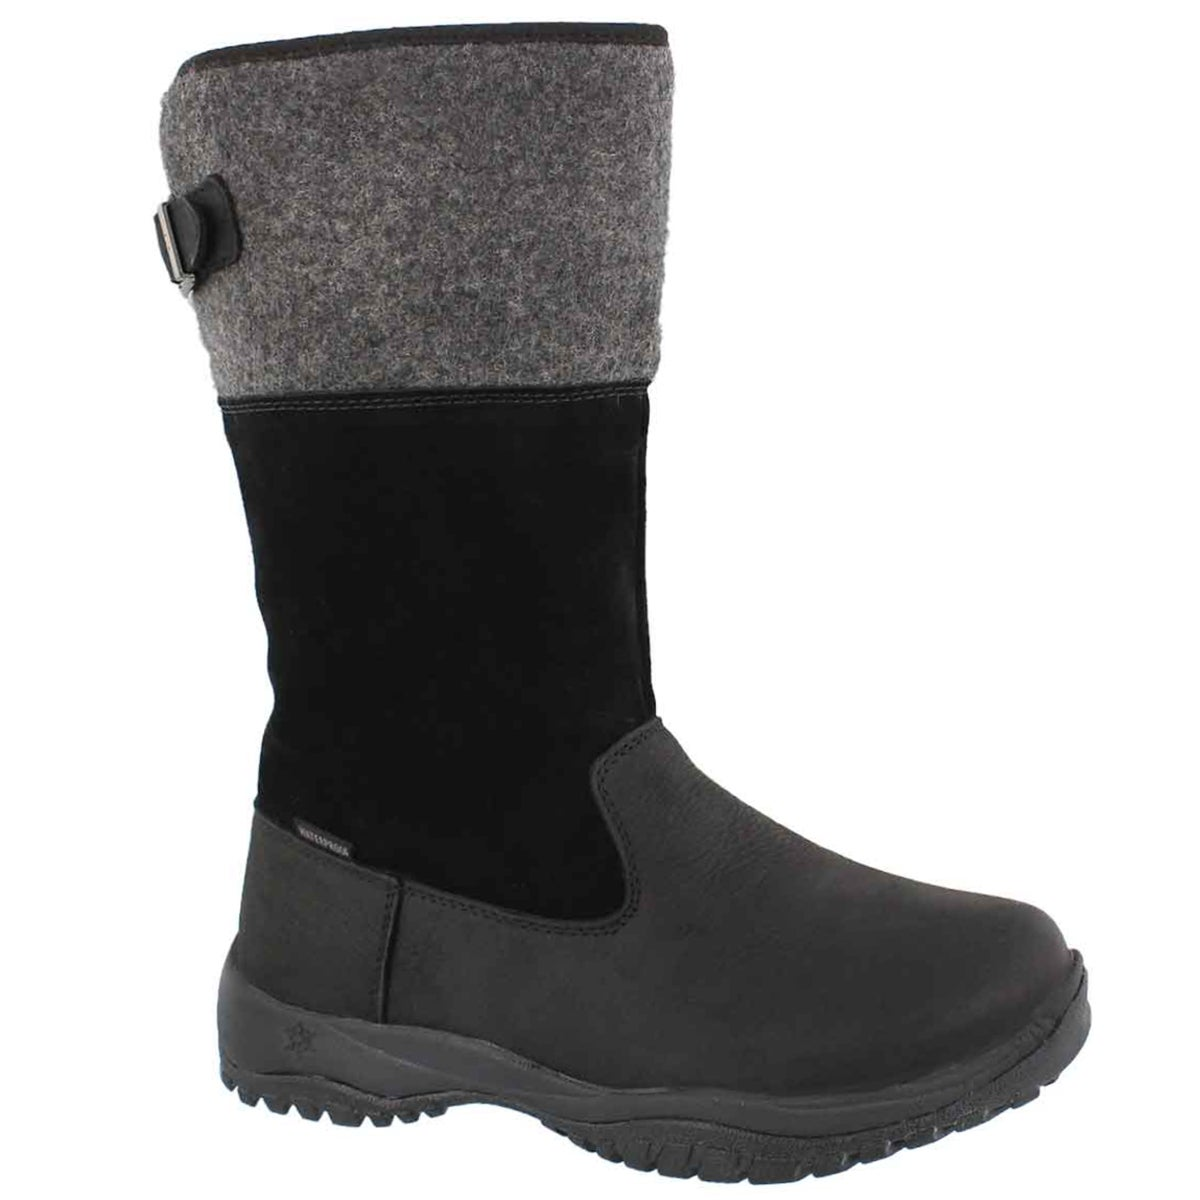 Women's ENGLEBERG blk tall waterproof winter boots